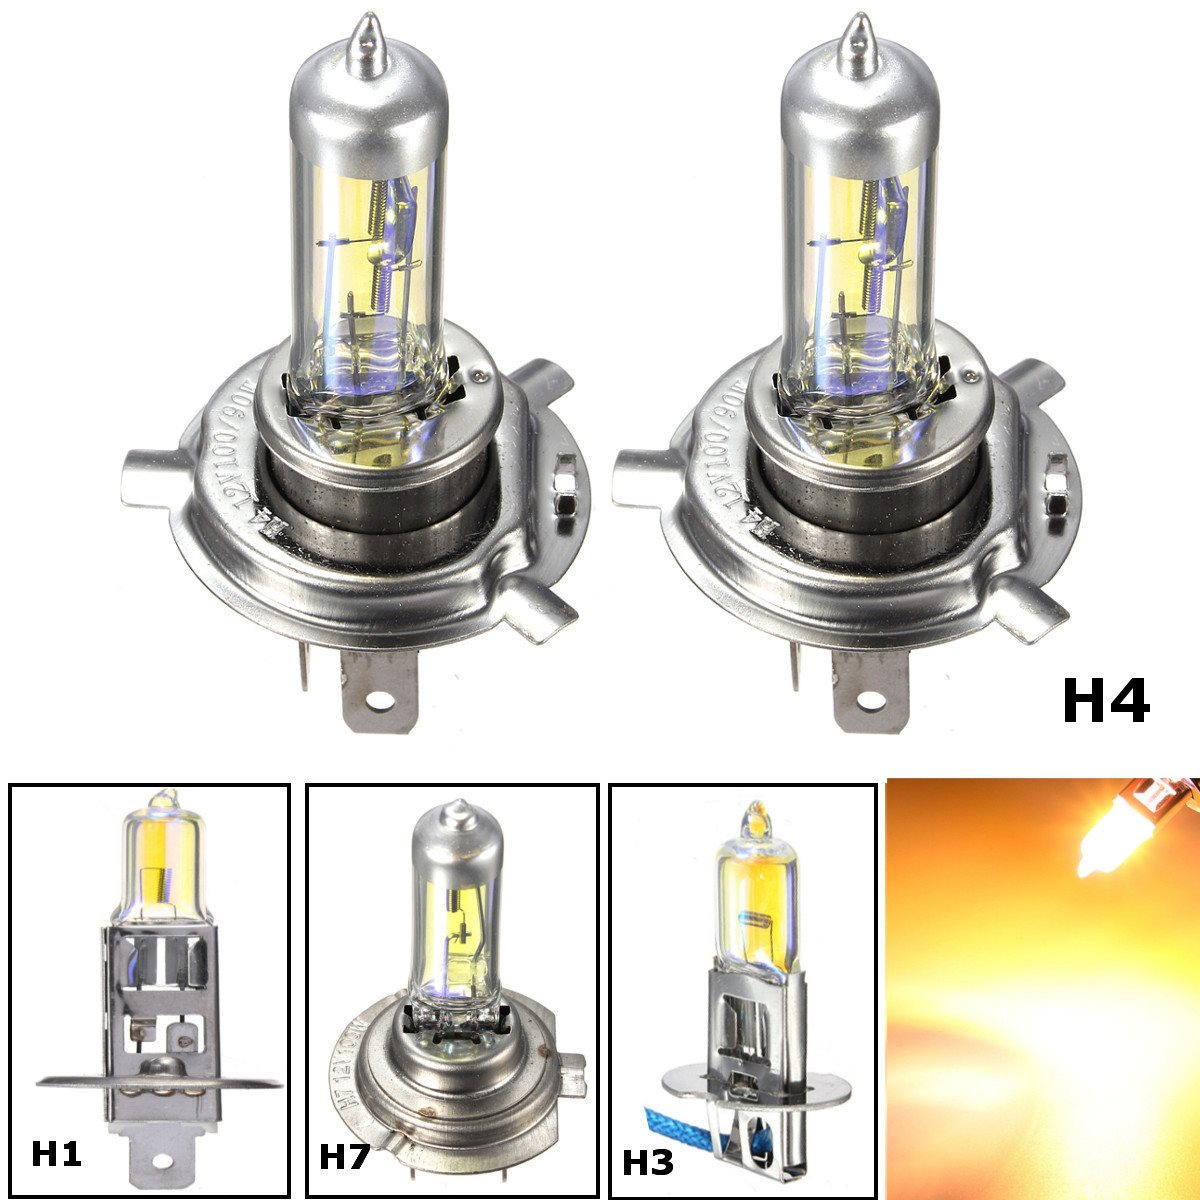 H1 H3 H4 <font><b>H7</b></font> <font><b>55W</b></font> Yellow <font><b>LED</b></font> Car Light Halogen <font><b>Lamp</b></font> Bulb Car Styling HeadLight <font><b>Lamp</b></font> Xenon Fog Lights Dipped Beam image